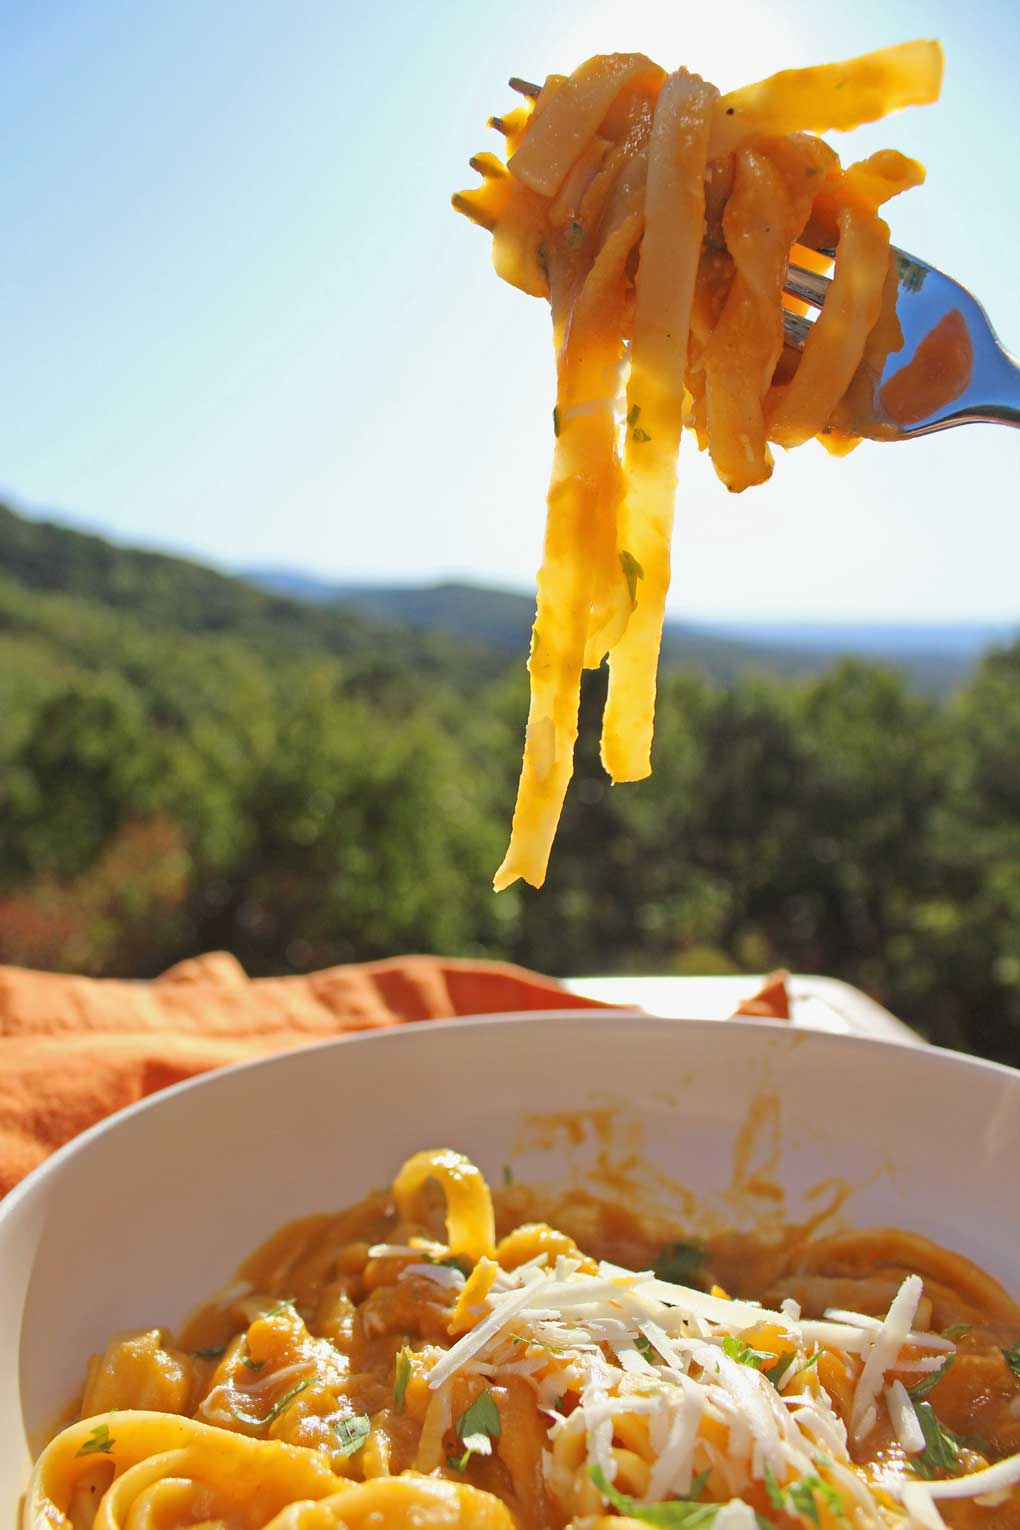 This healthy Butternut Squash Fettuccine is so creamy yet made vegan-friendly when omitting the cheese. A delicious pasta dish great for Meatless Monday!